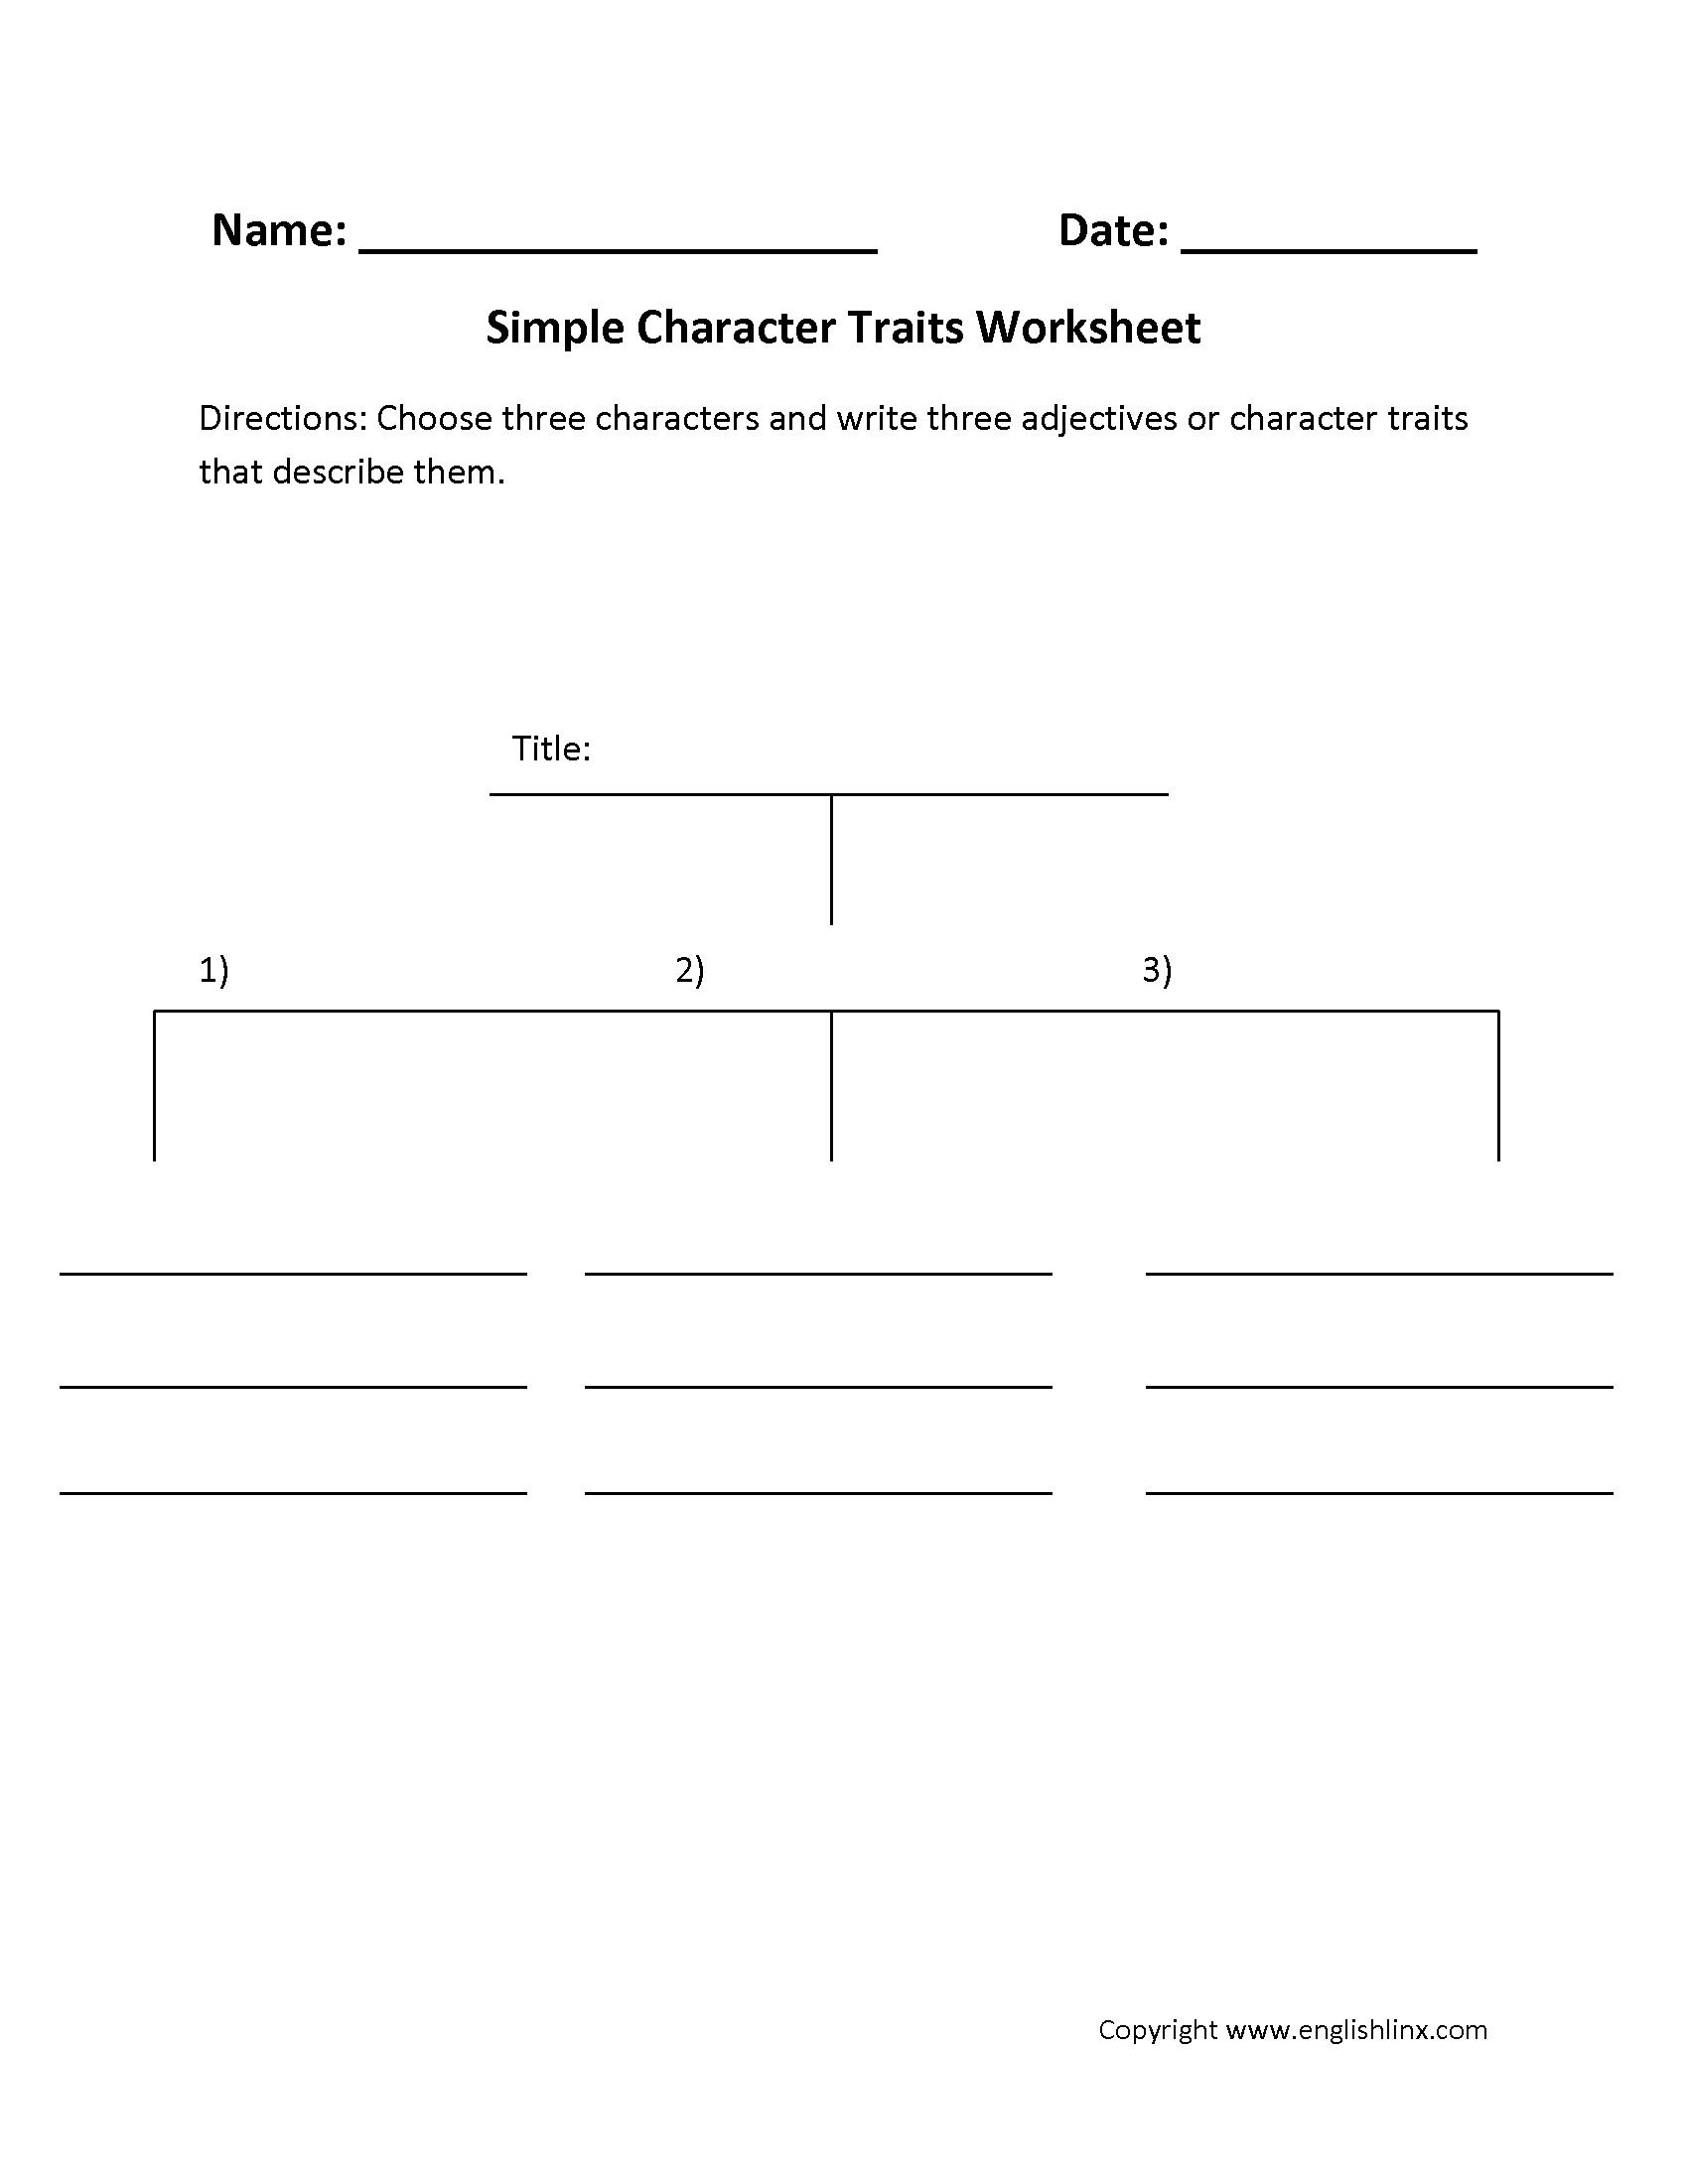 Free Worksheet Identifying Character Traits Worksheet englishlinx com character analysis worksheets simple traits worksheets